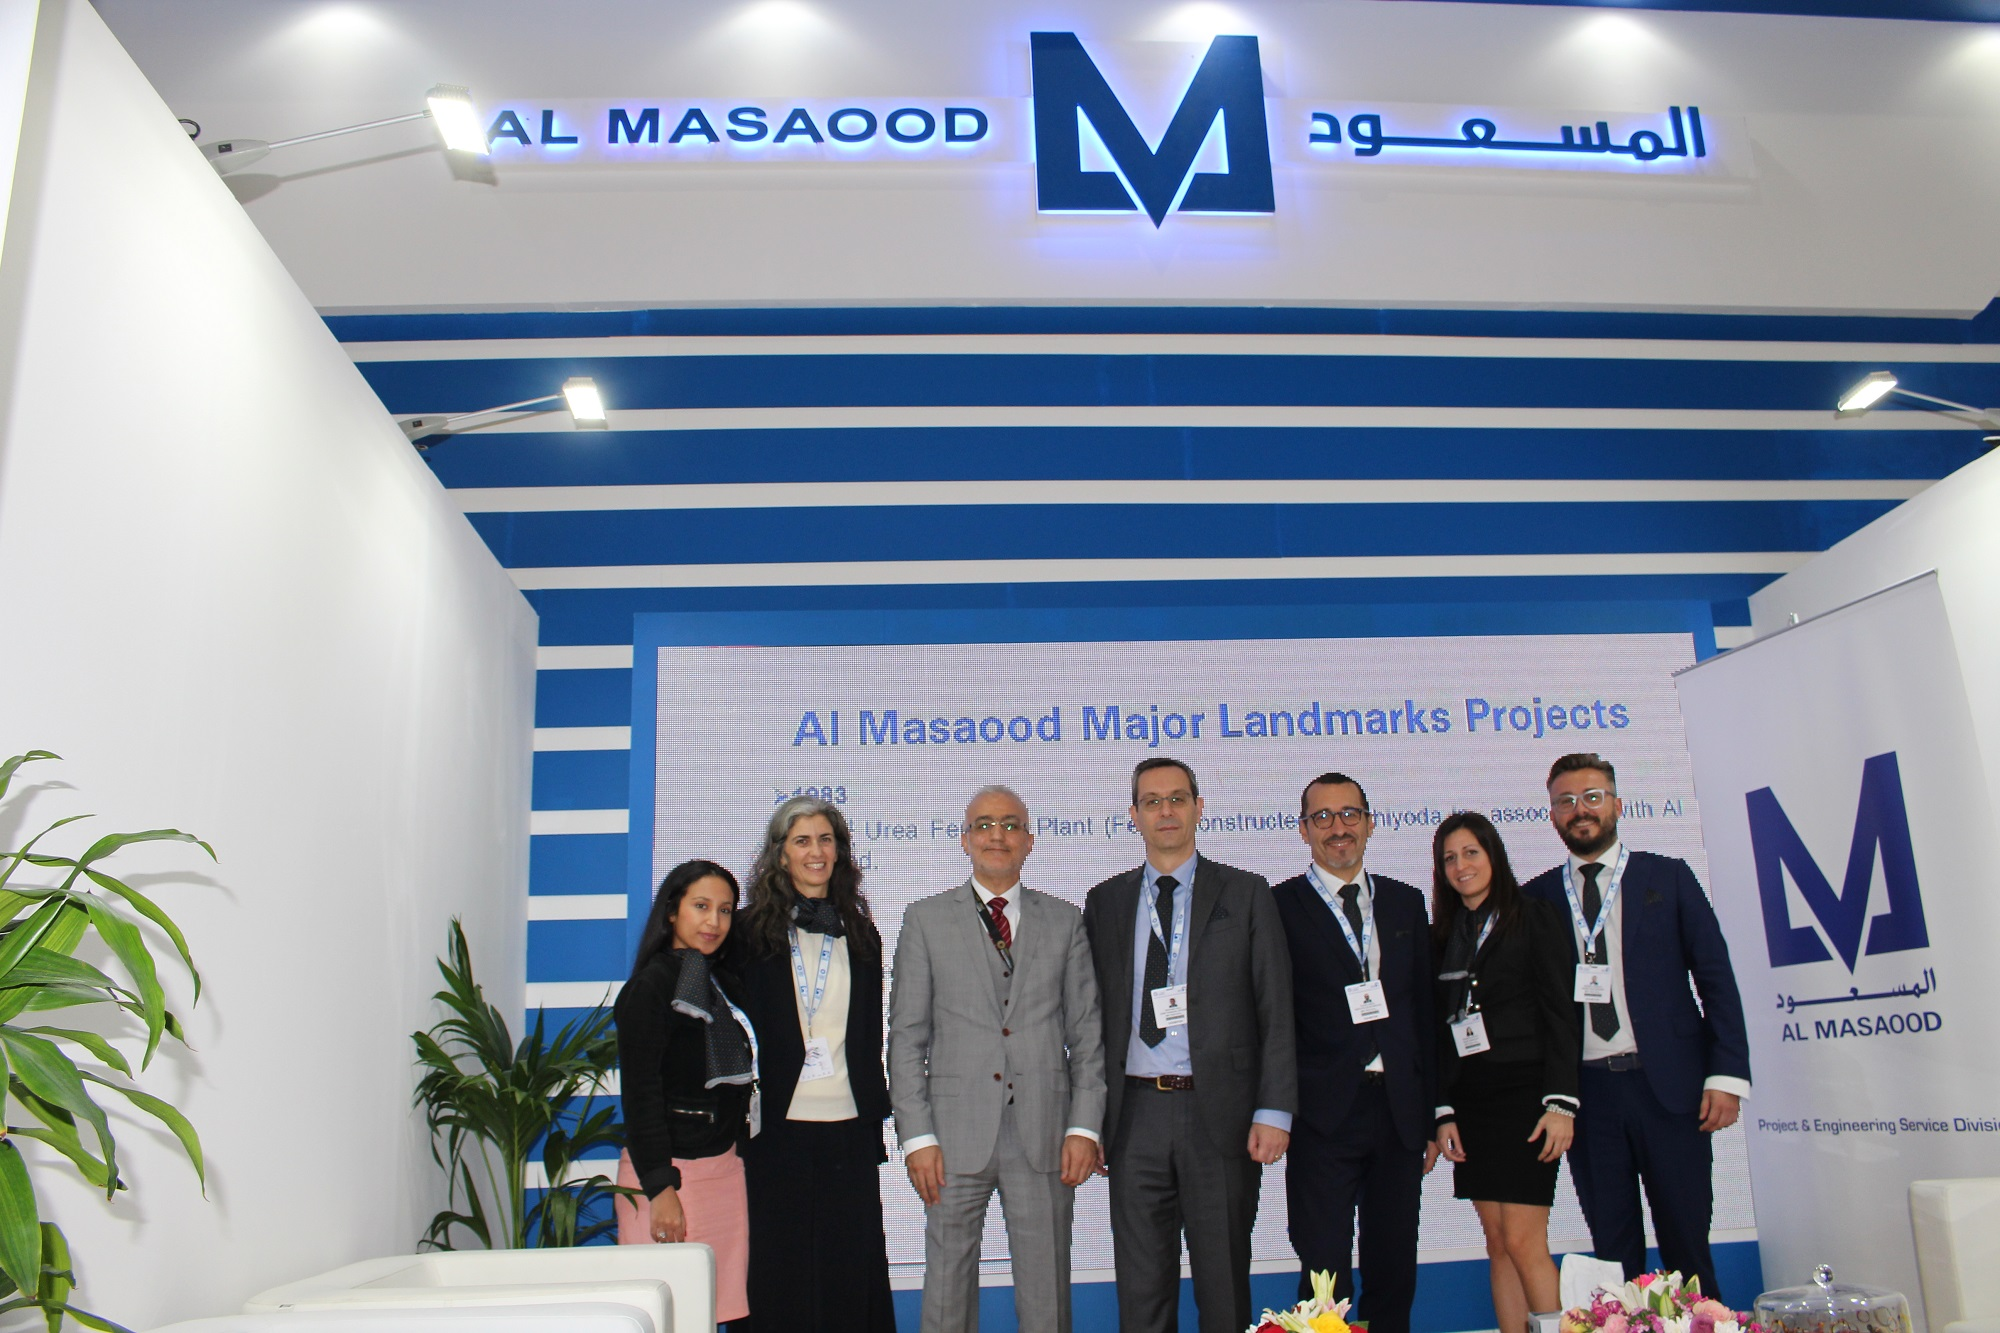 Al Masaood Projects & Engineering Services Division set to Share Global Energy Solutions at ADIPEC 2018